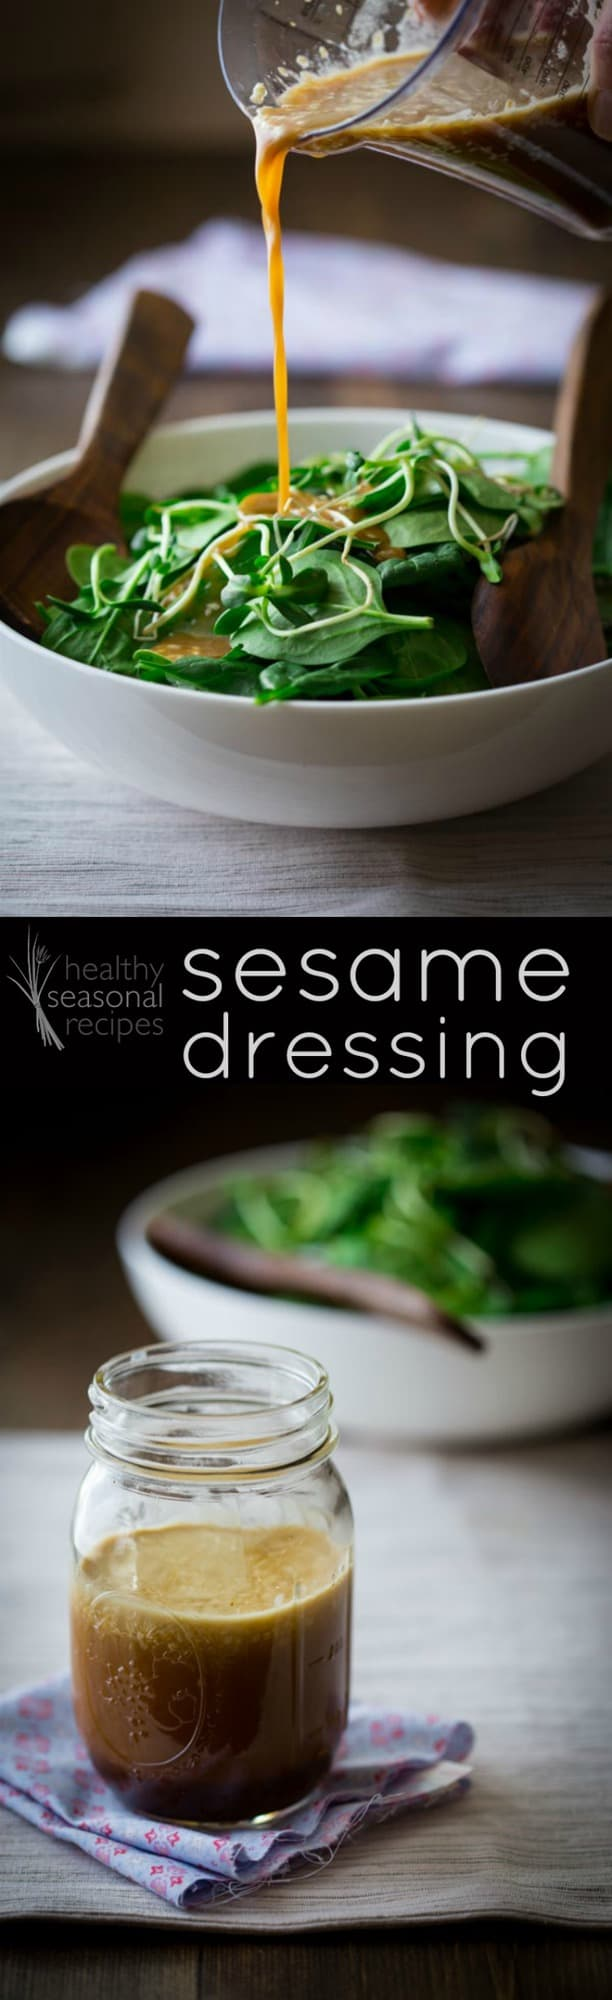 asian sesame dressing - Healthy Seasonal Recipes